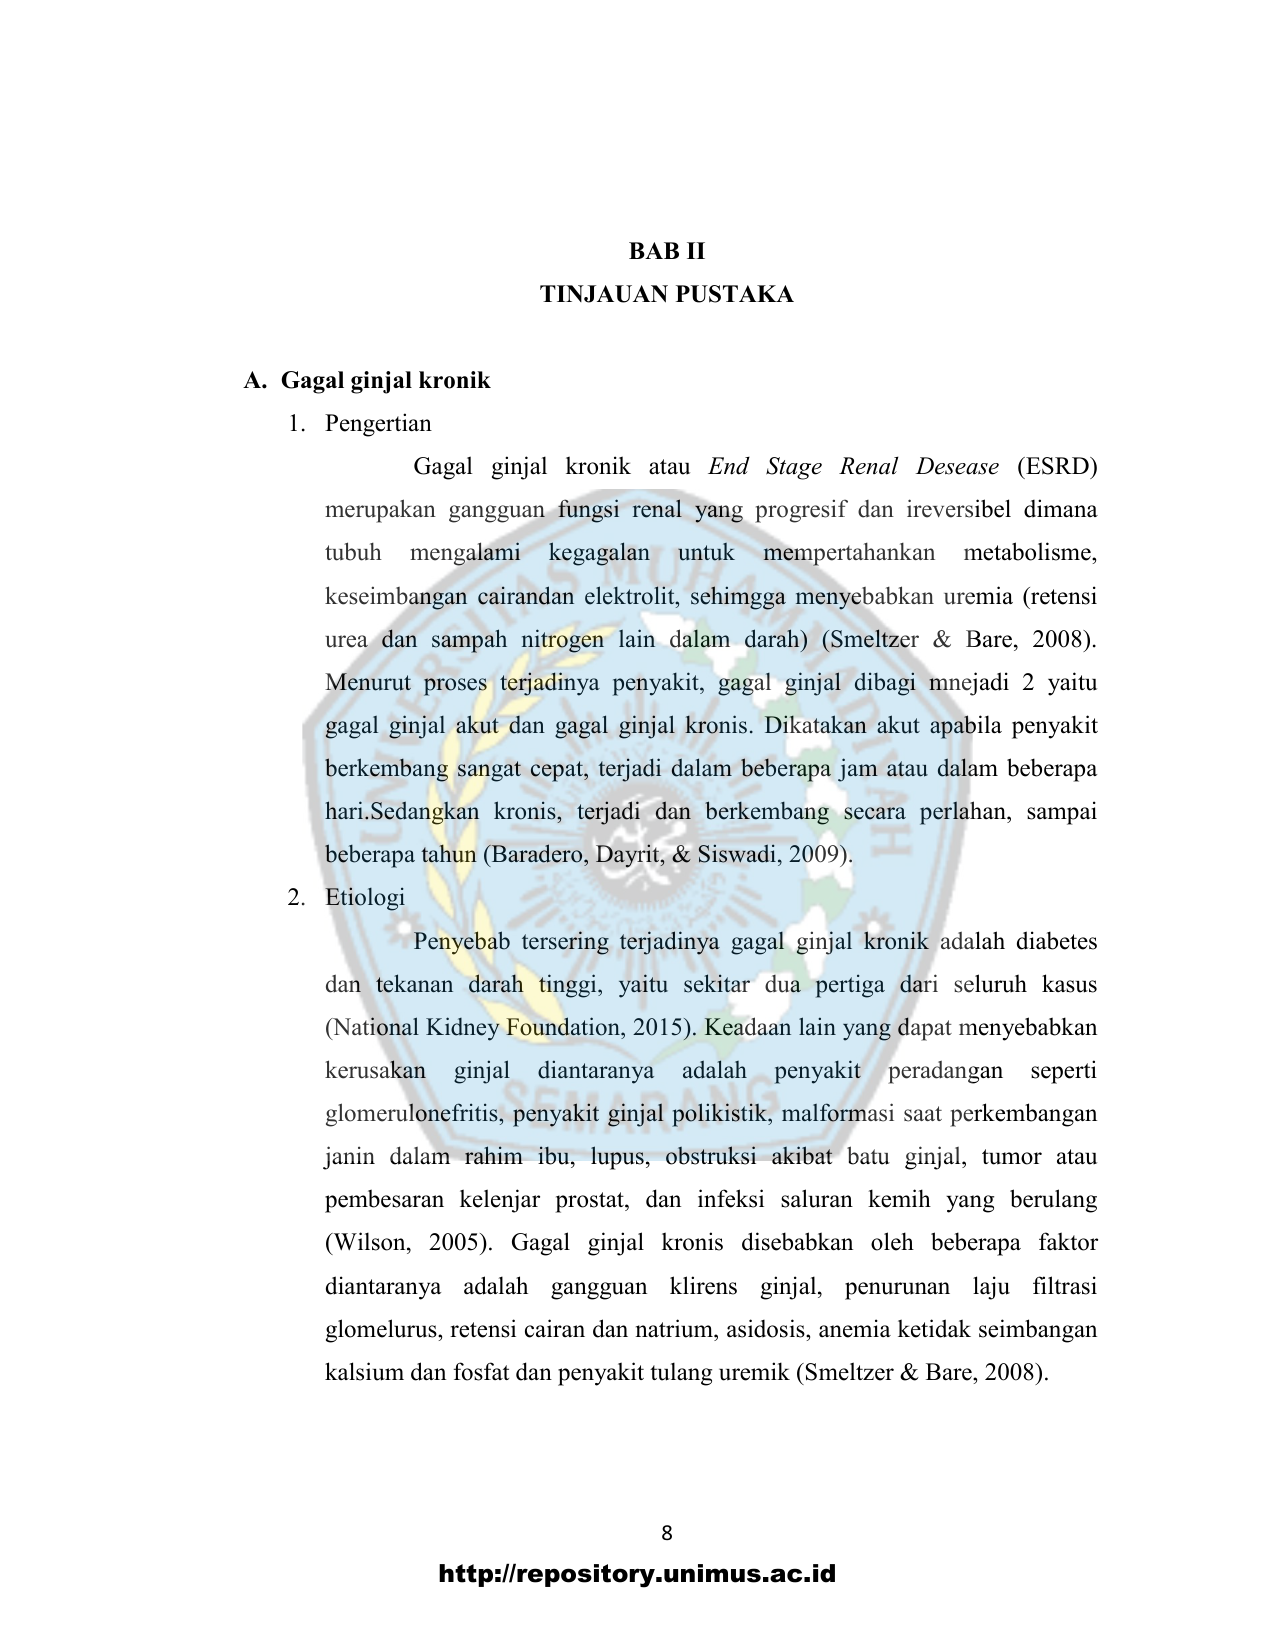 JURNAL GAGAL GINJAL KRONIK DOWNLOAD